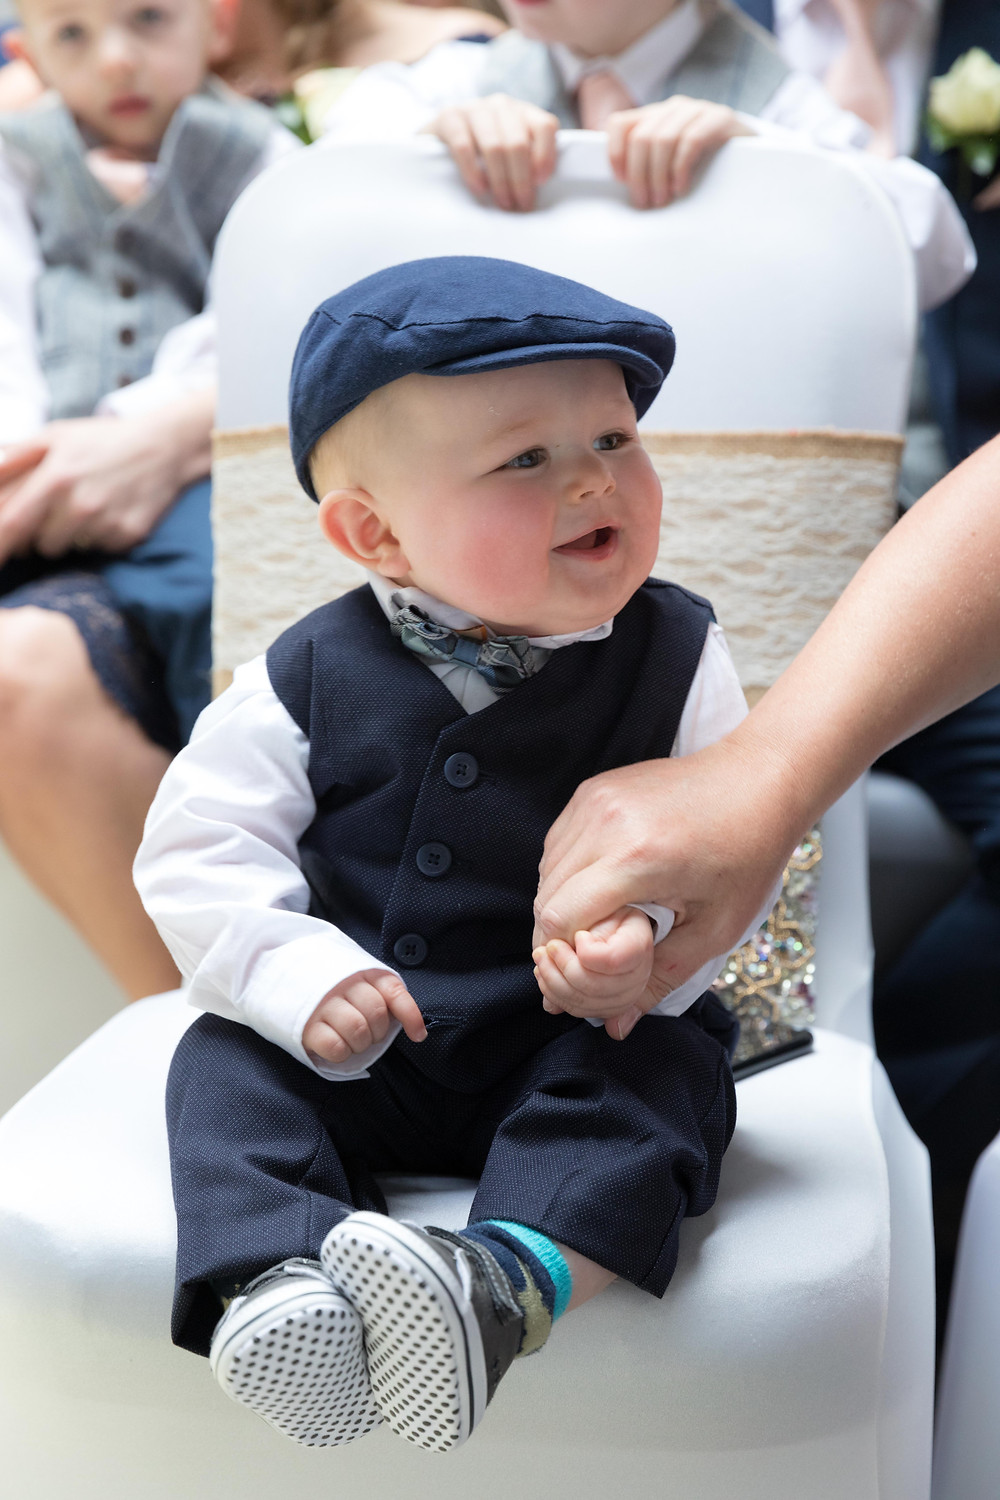 Photo of a baby in a suit during a wedding